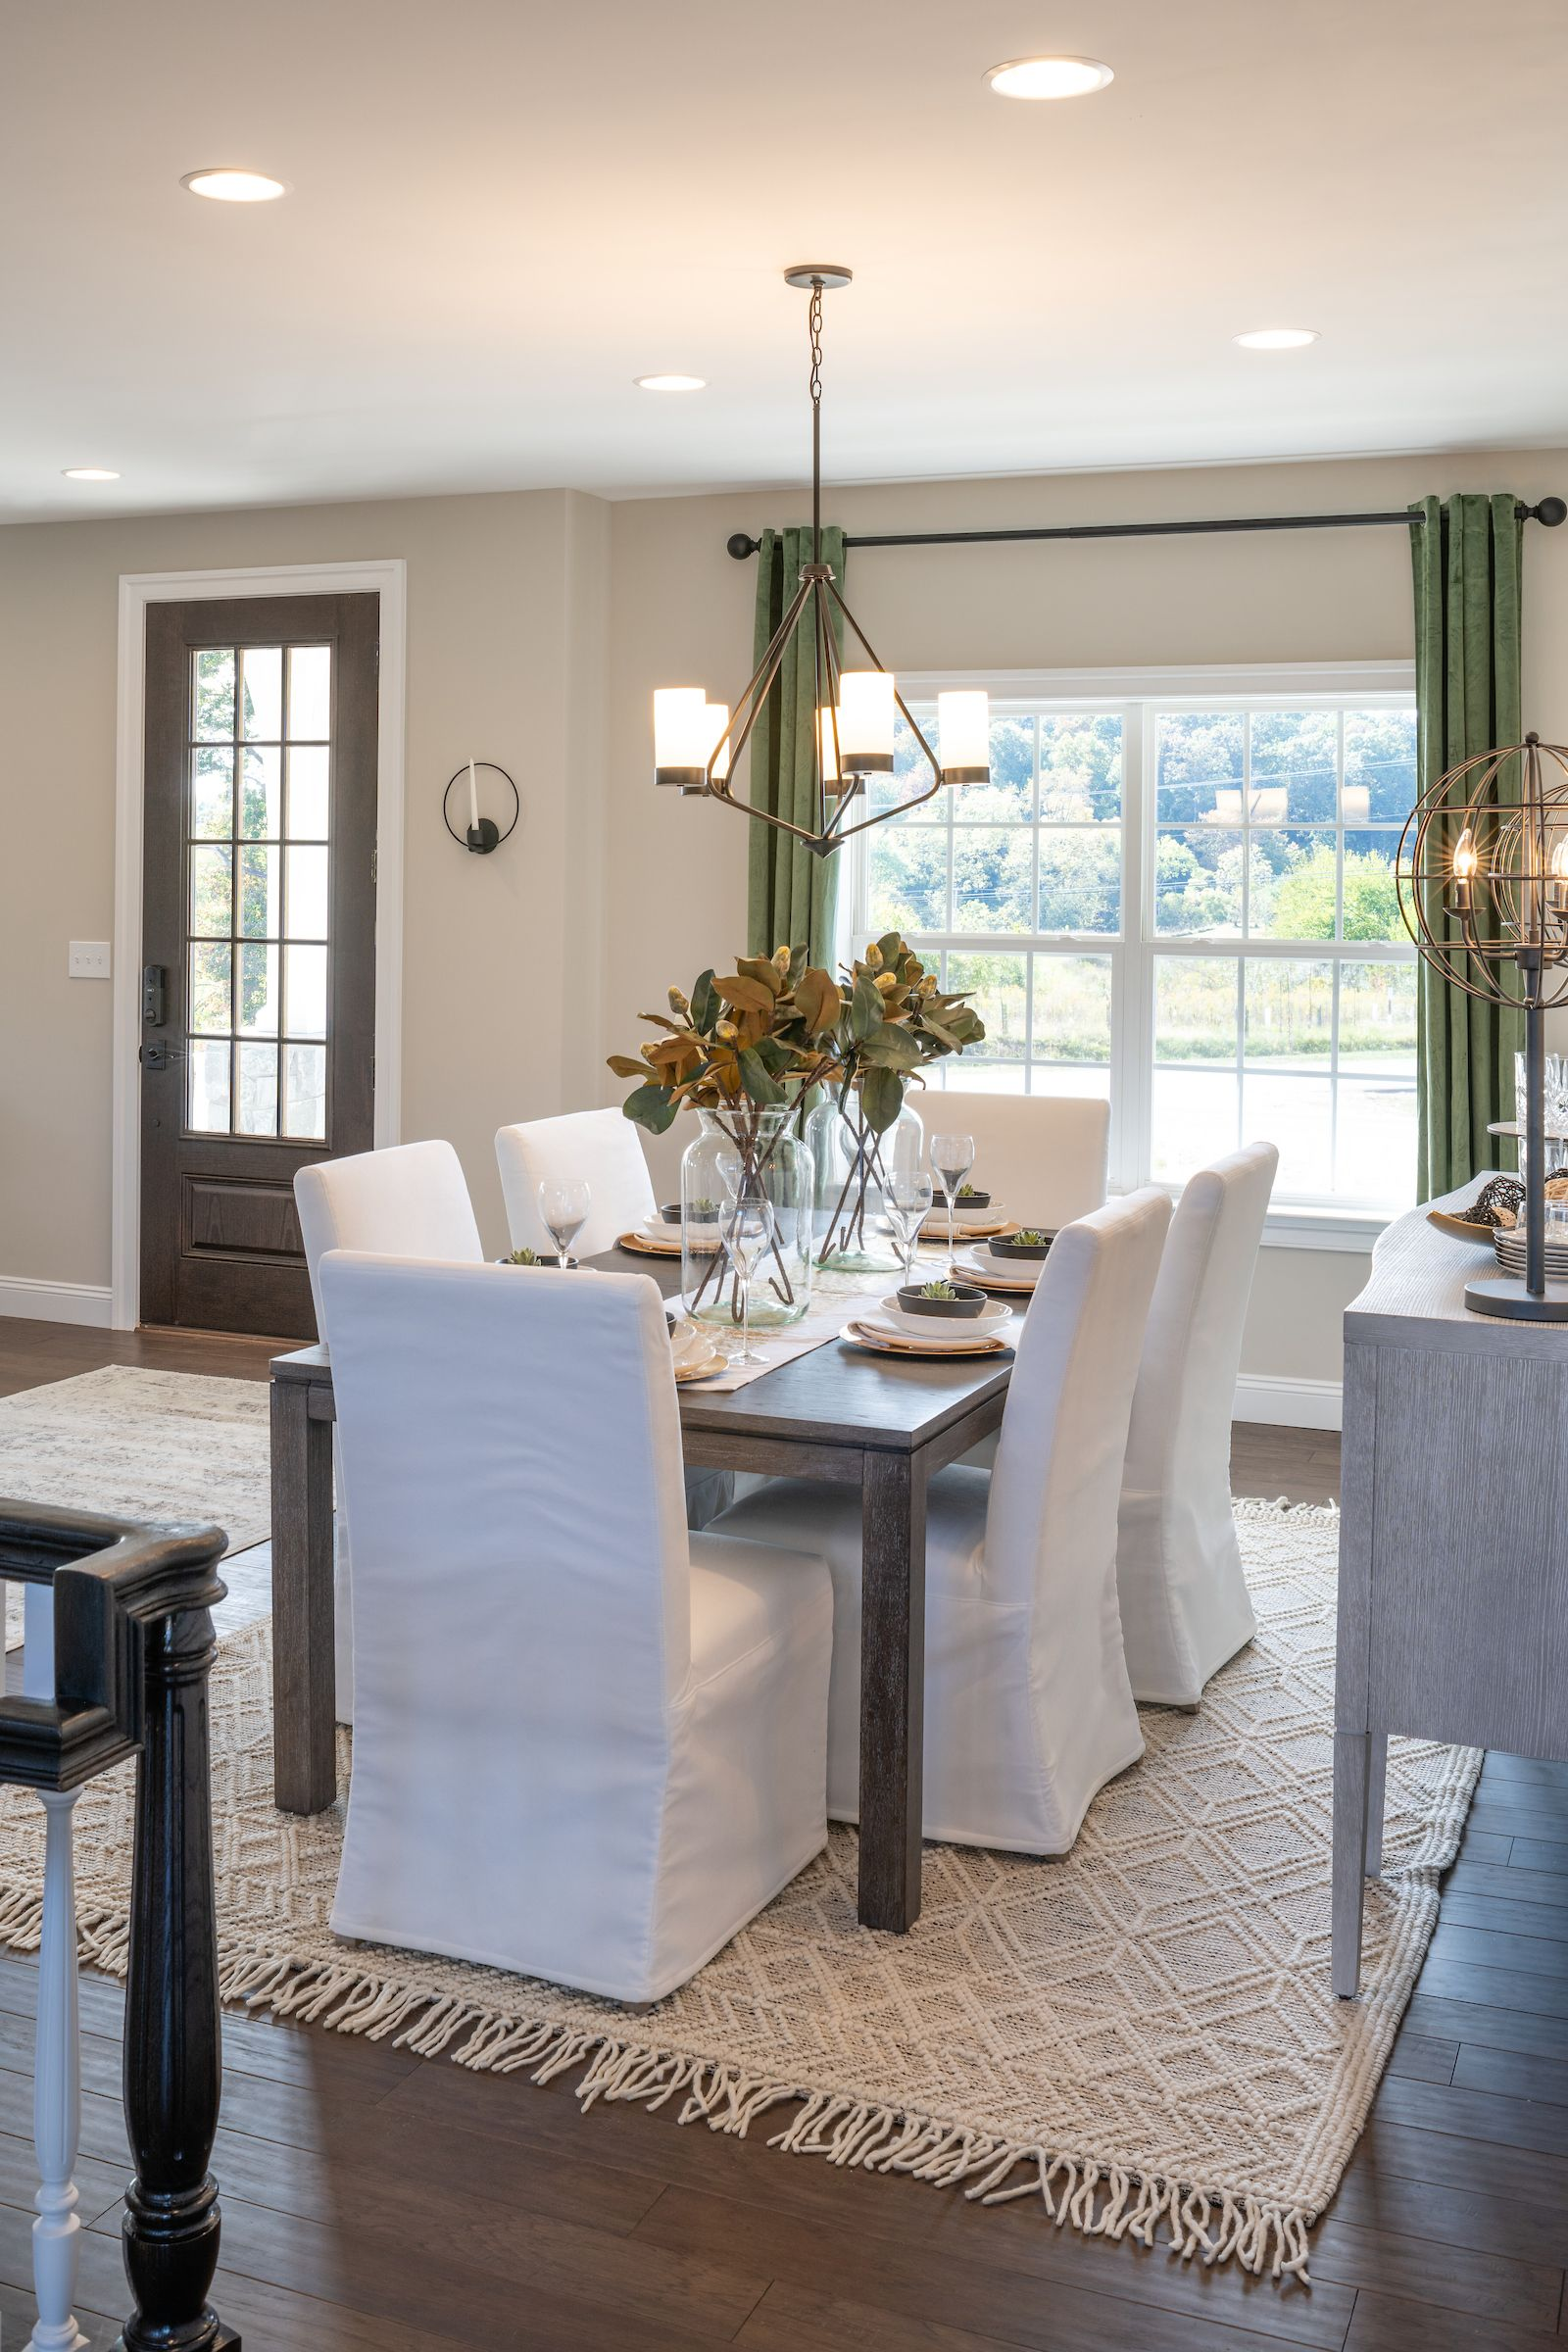 Living Area featured in the Hawthorne Manor By Keystone Custom Homes in Lancaster, PA